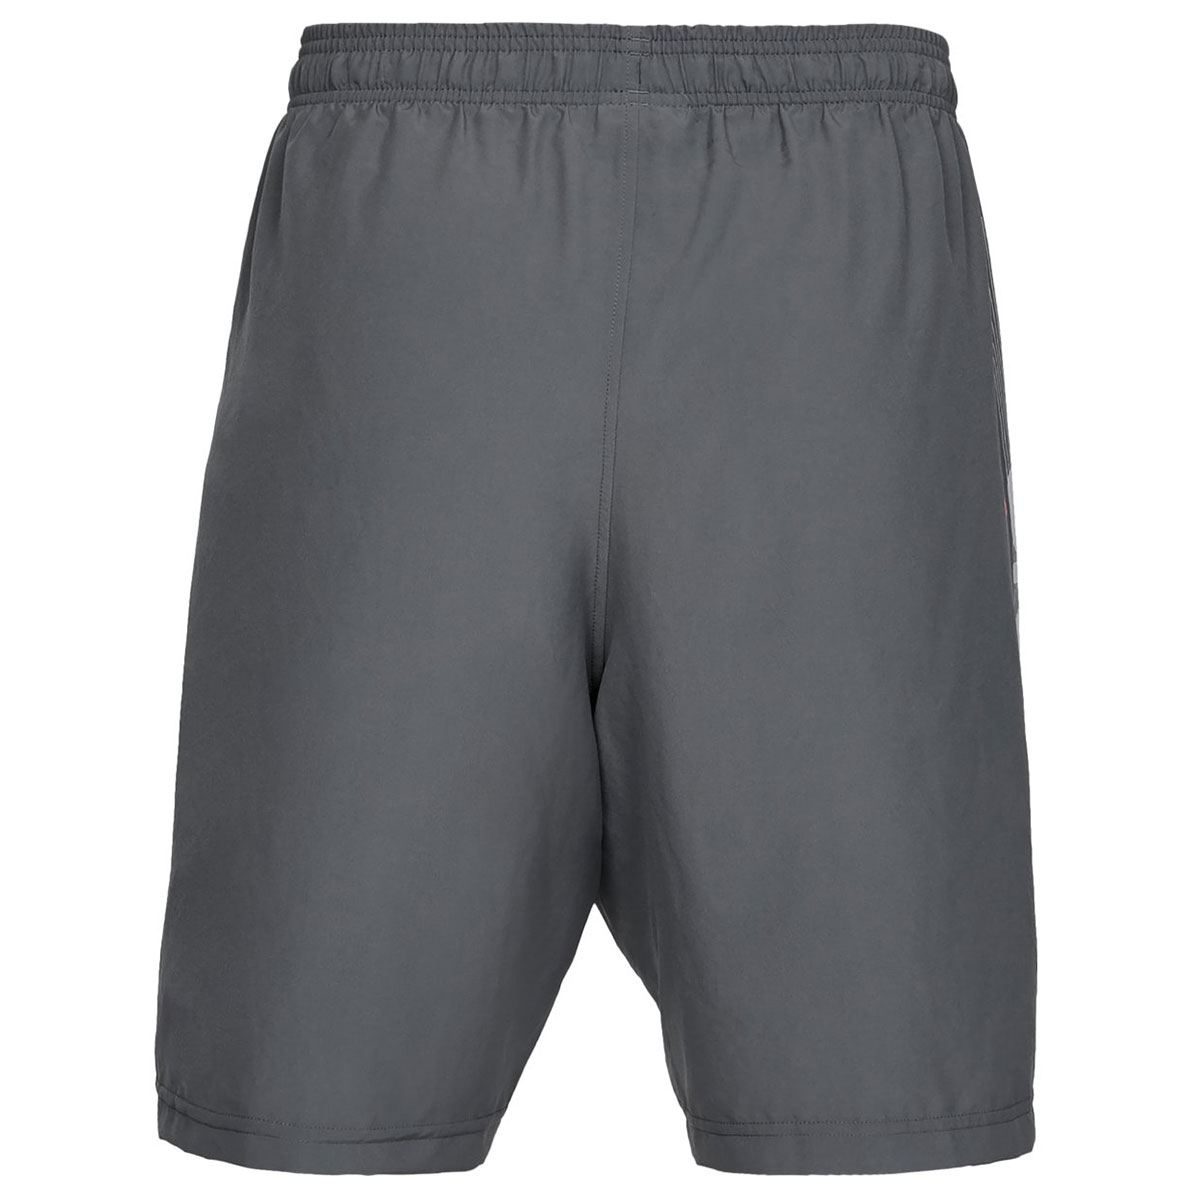 Under-Armour-Mens-2019-Woven-Graphic-Wordmark-Lightweight-Breathable-Shorts thumbnail 17